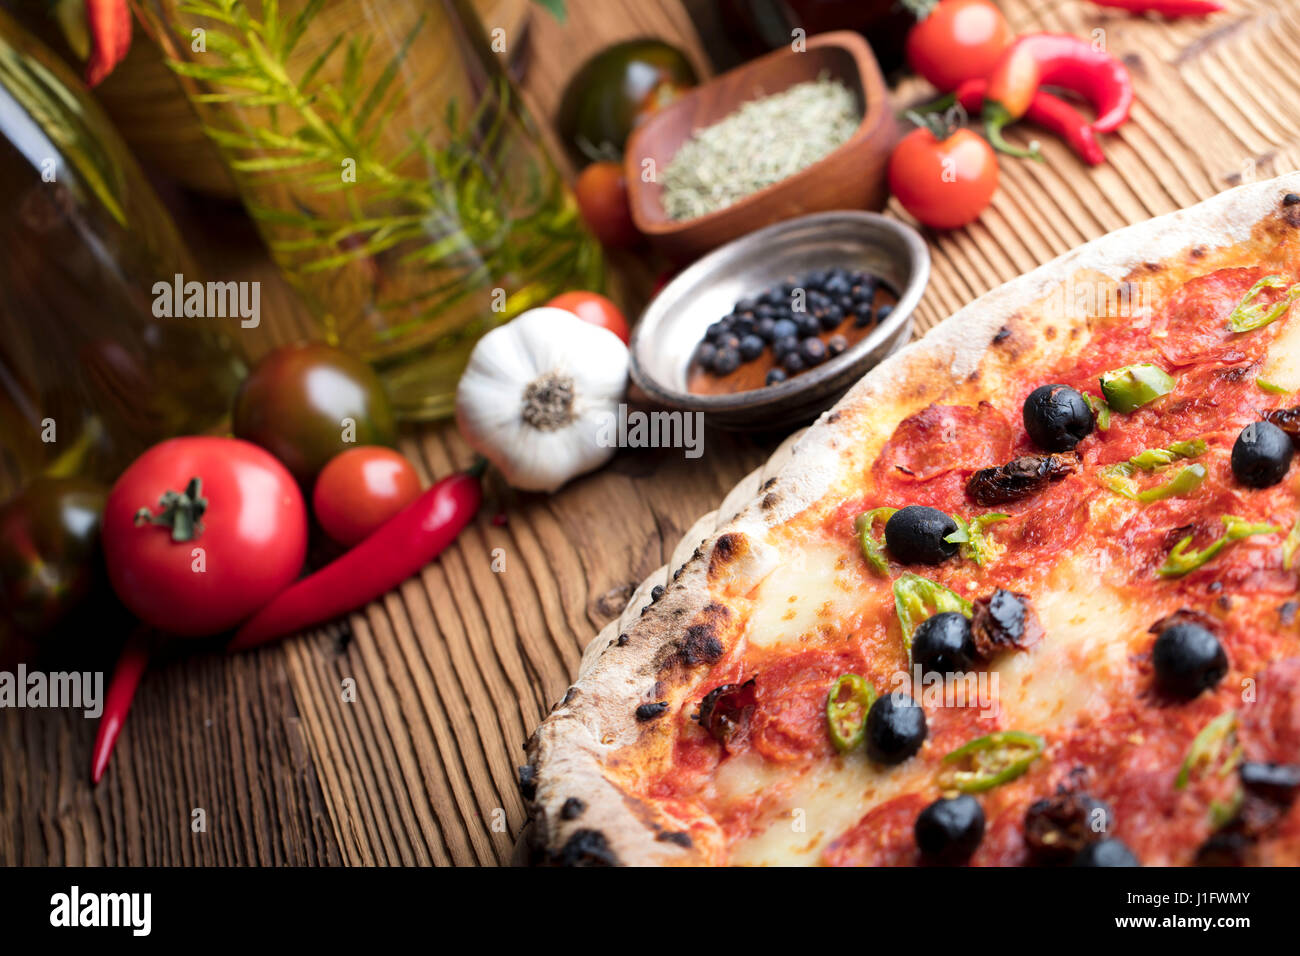 Italian food concept, rosemary olive oil, healthy food - Stock Image